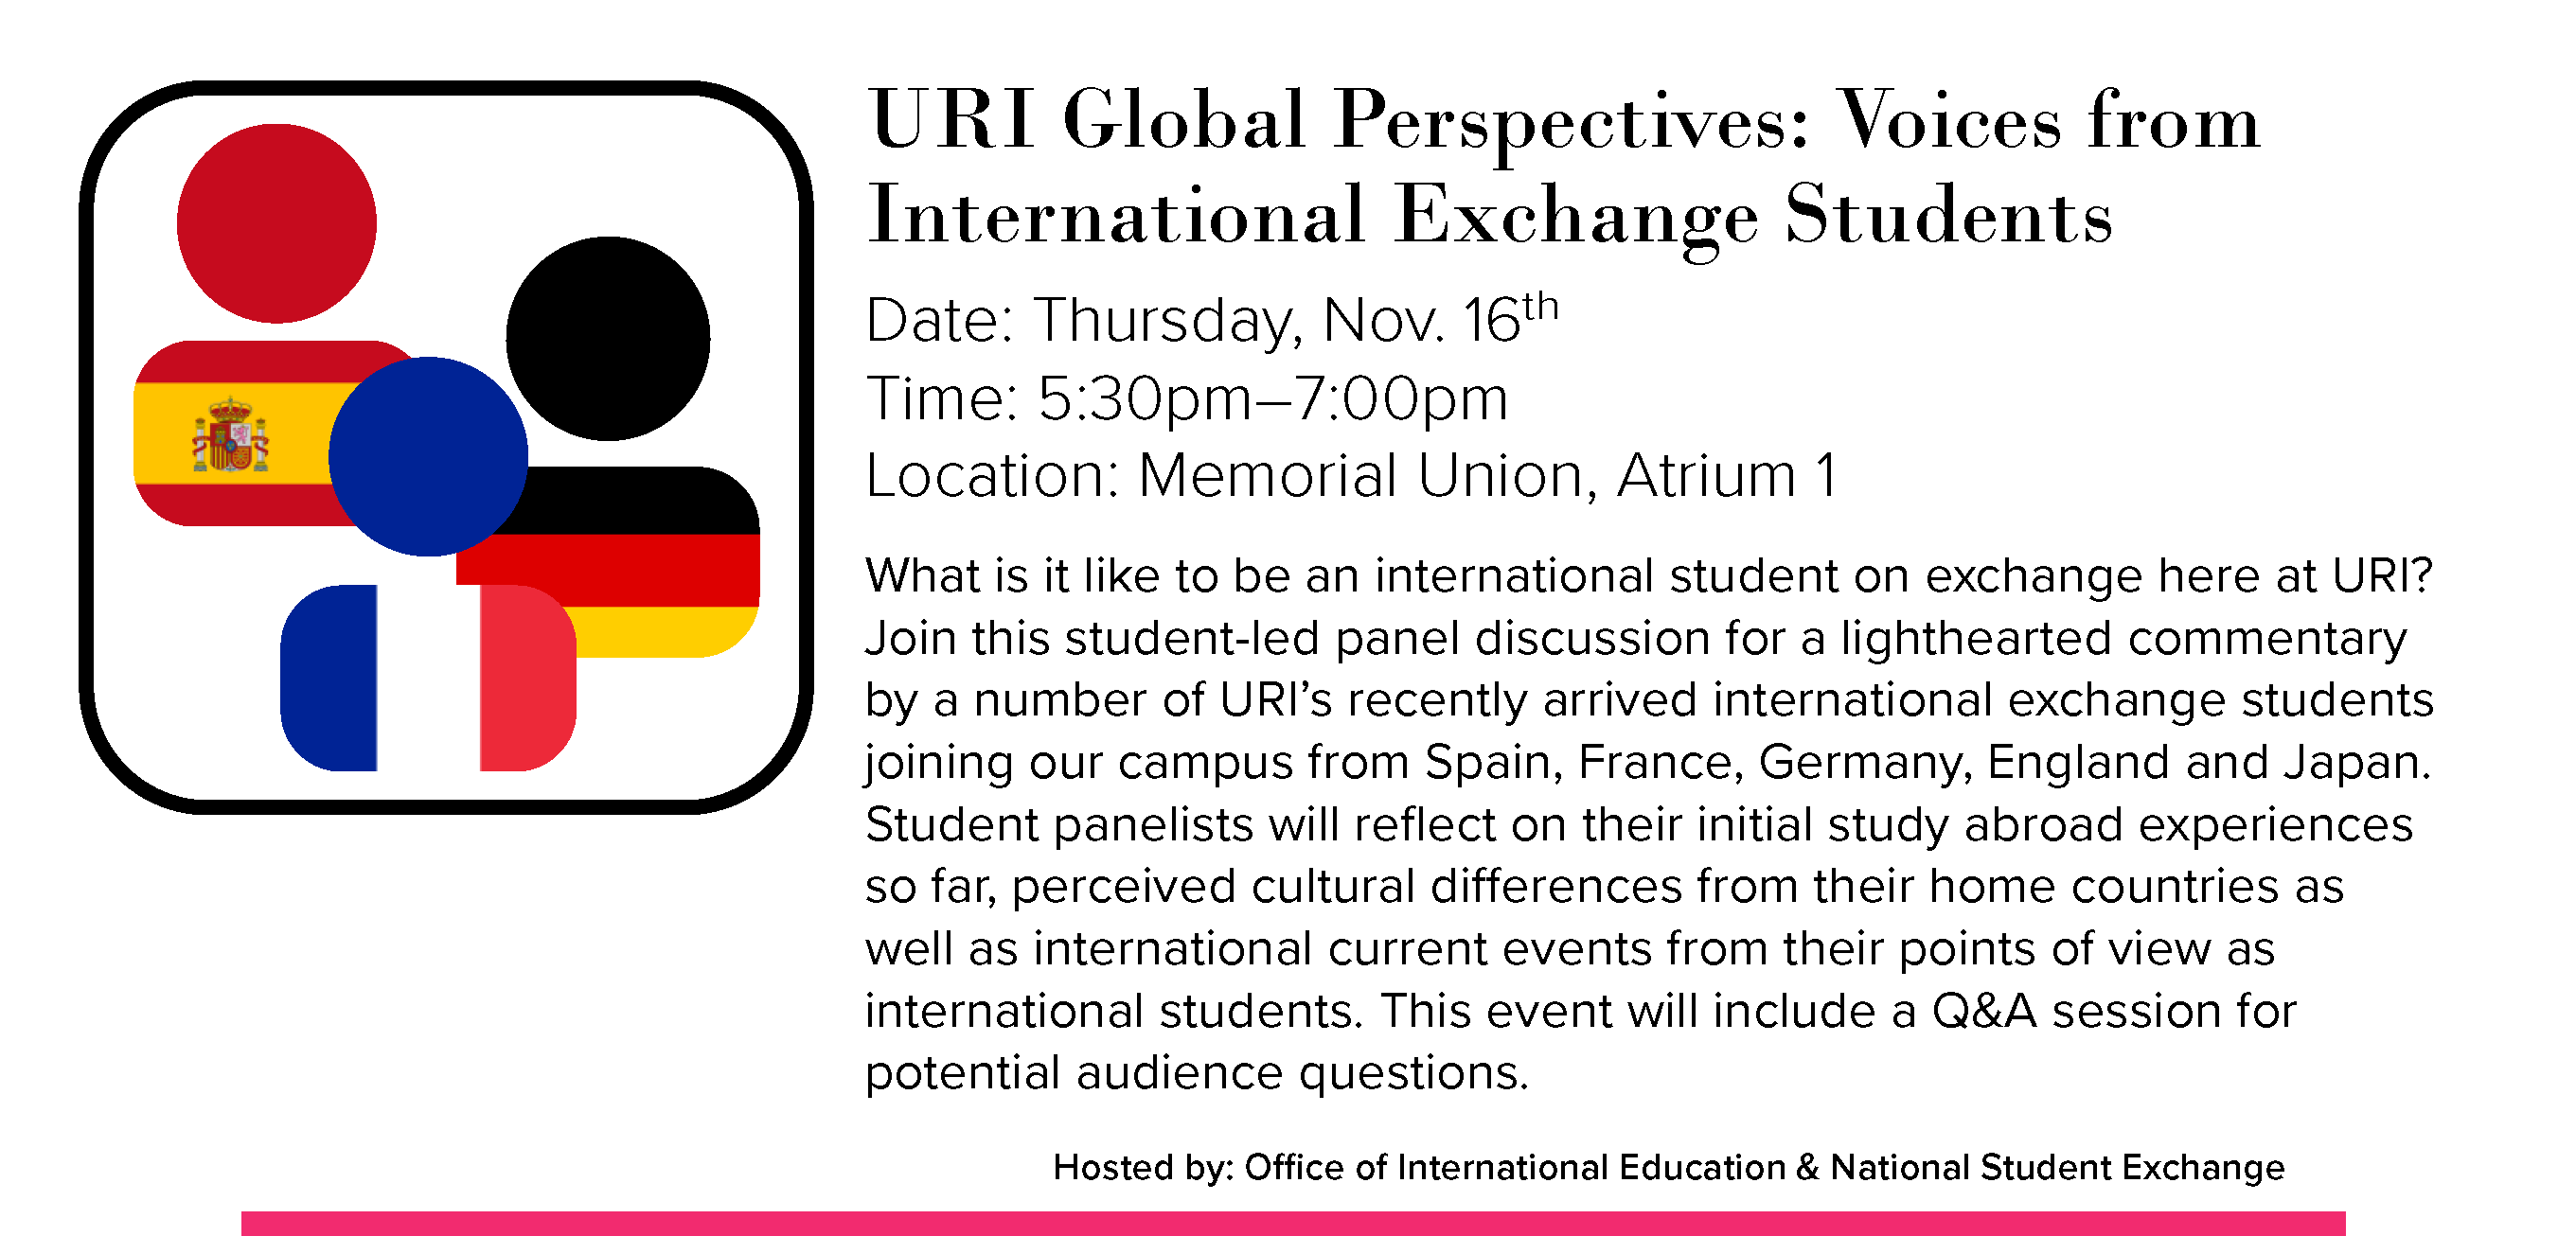 URI Global Perspectives: Voices from International Exchange Students Event